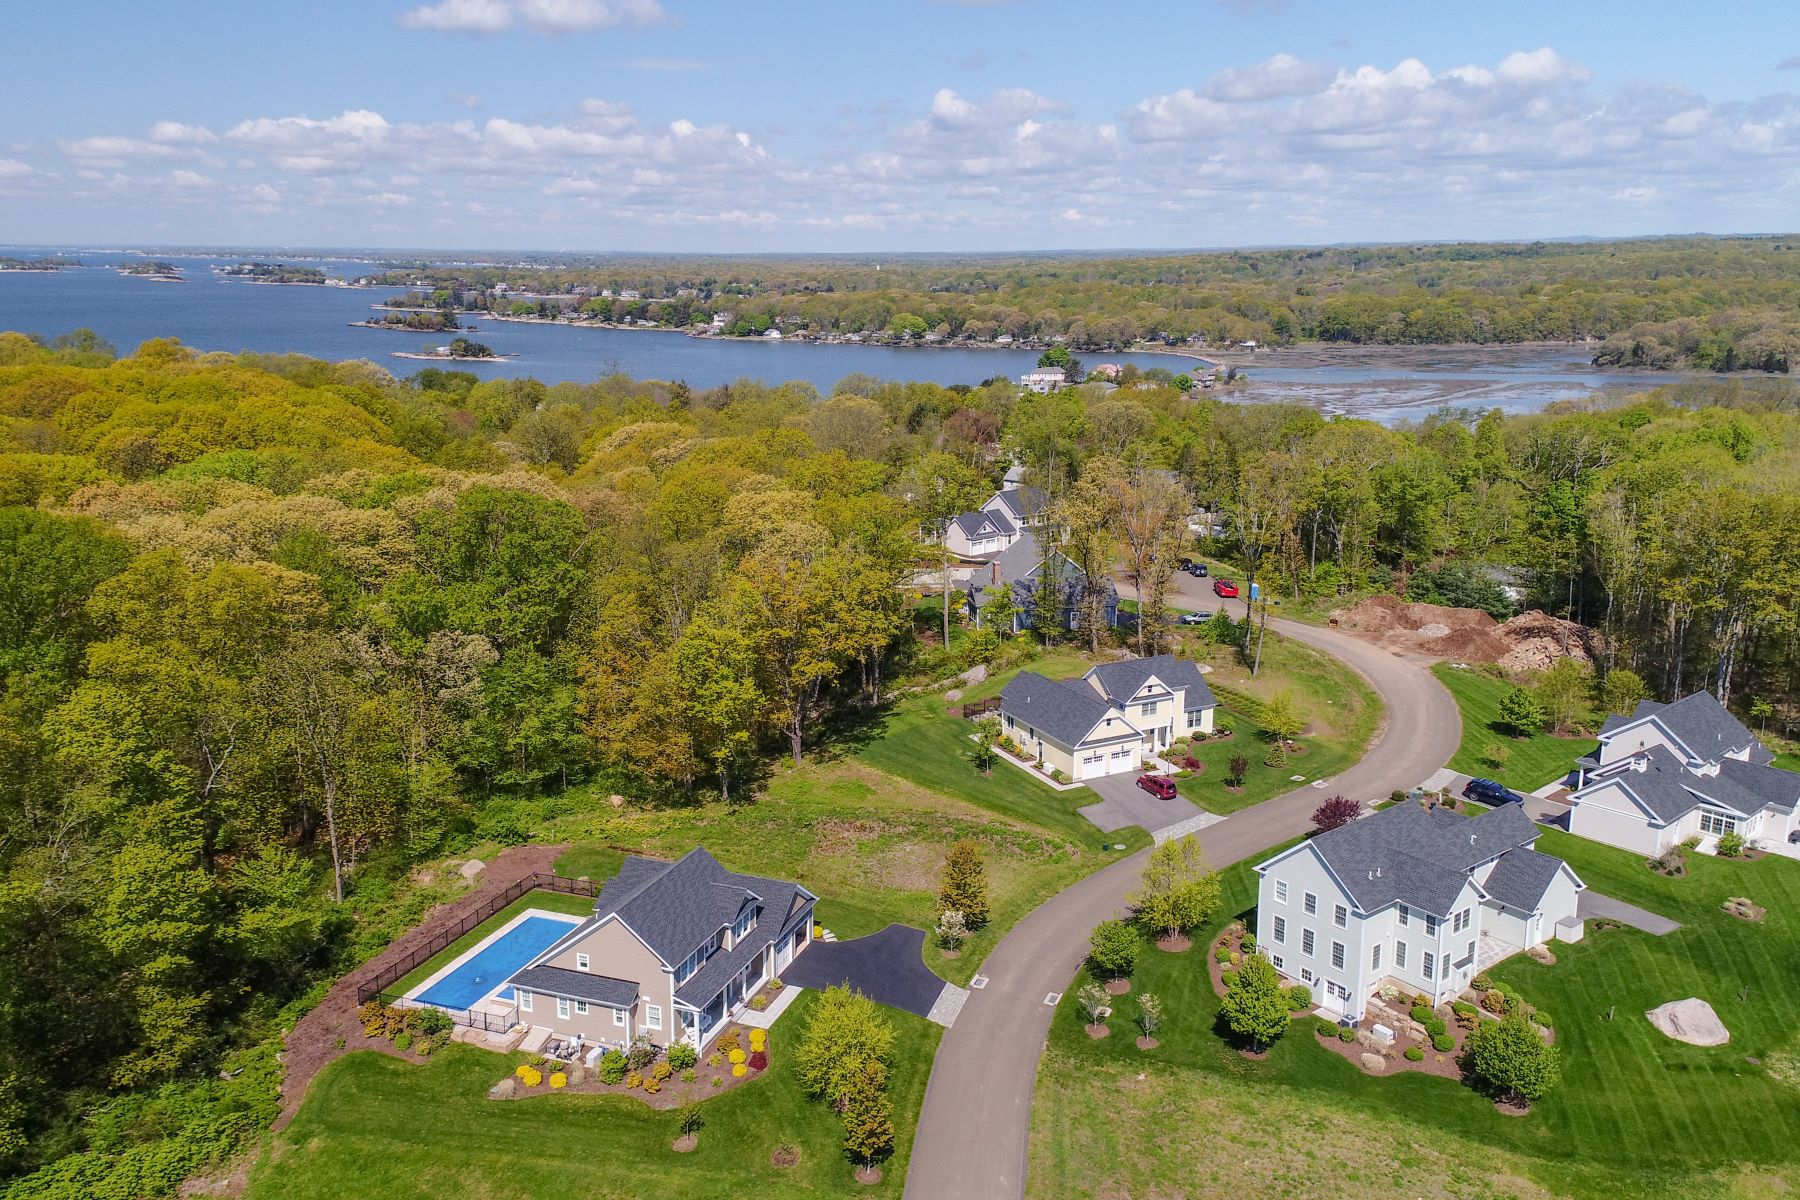 Single Family Homes for Active at Benton's Knoll in Sachem's Head 14 Benton's Knoll Guilford, Connecticut 06437 United States